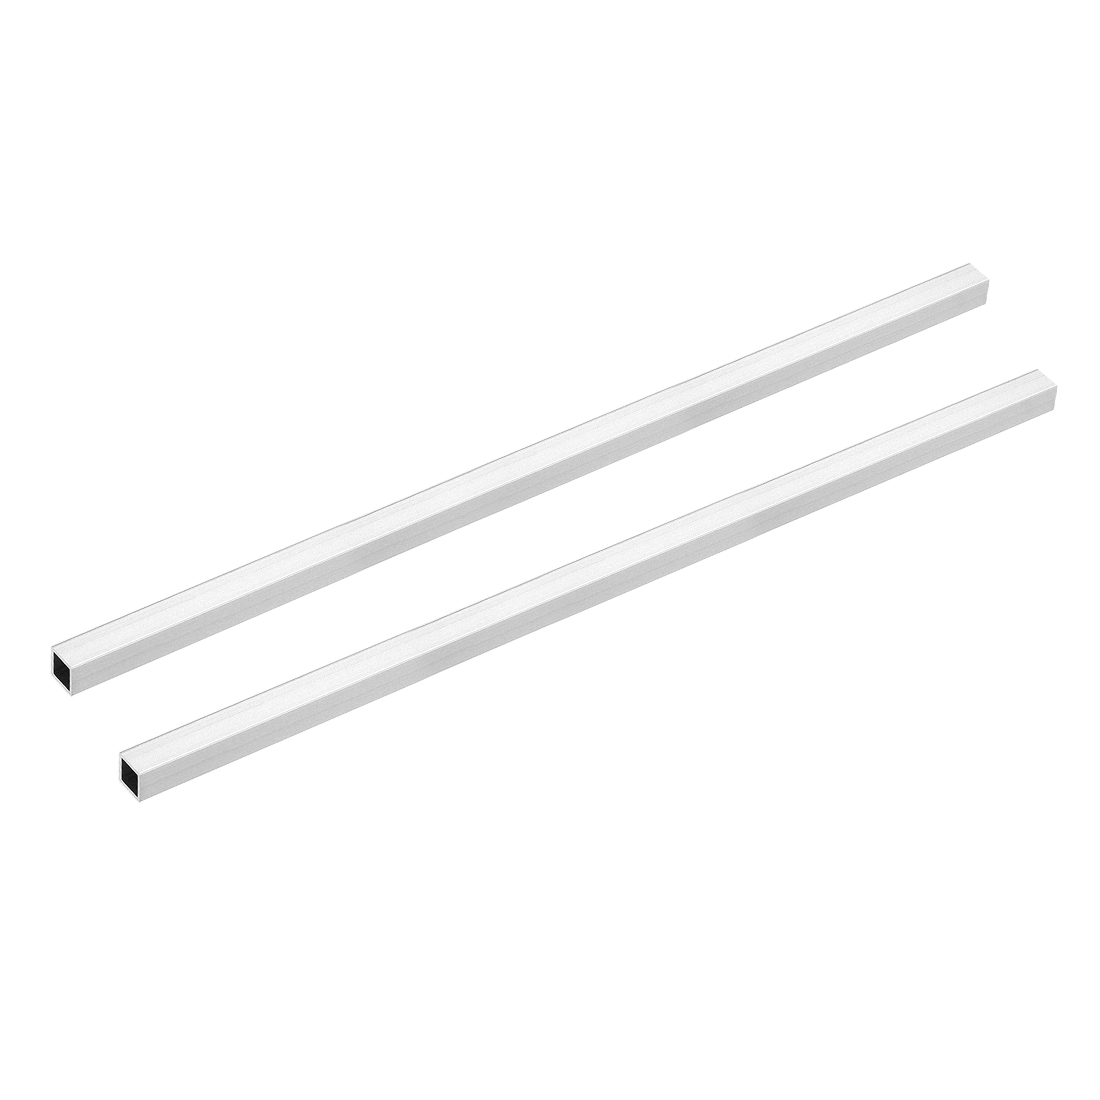 6063 Aluminum Square Tube 10mmx10mmx1mm Wall Thickness 300mm Length Tubing 2 Pcs